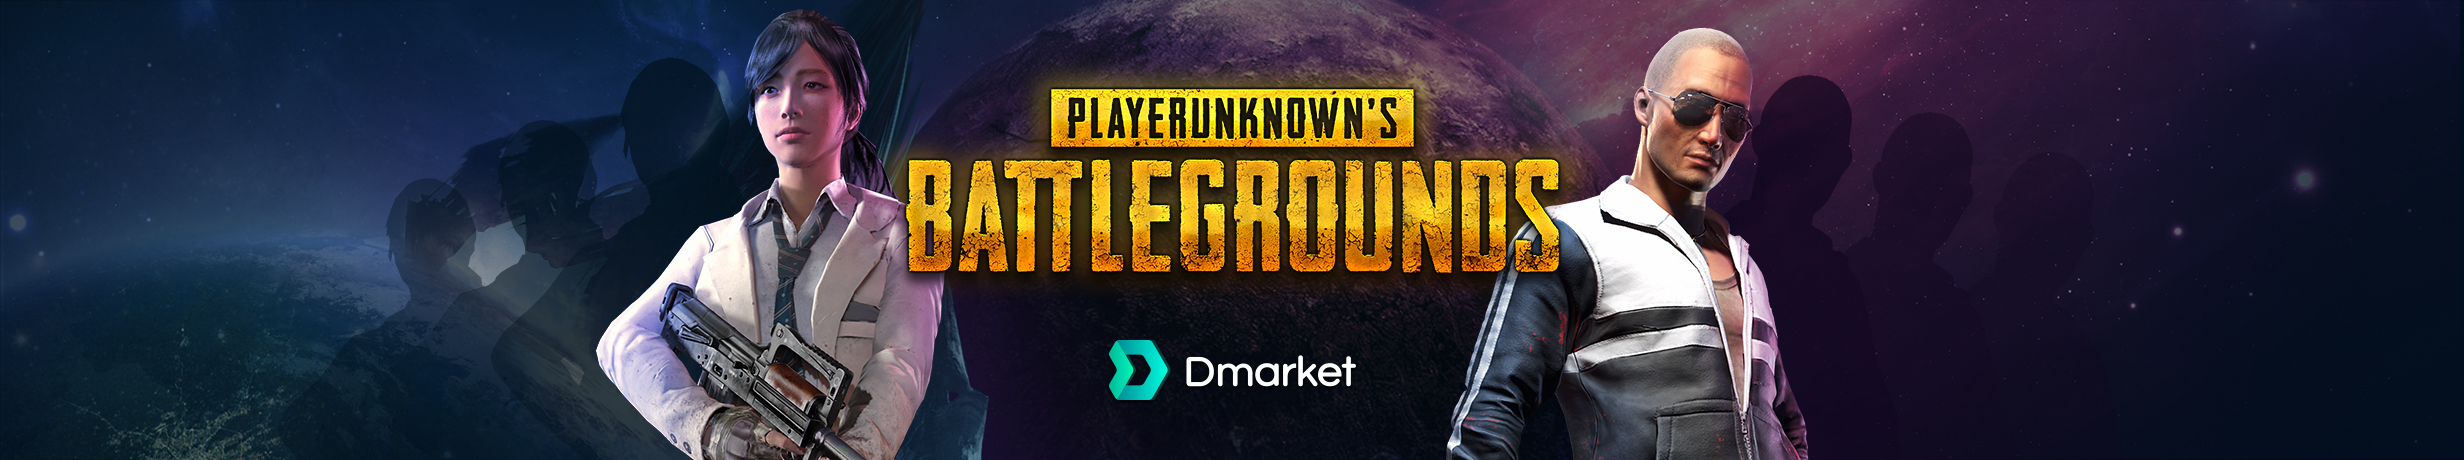 TOP 11 Rarest PUBG Skins List (Sets, Clothes) | DMarket | Blog